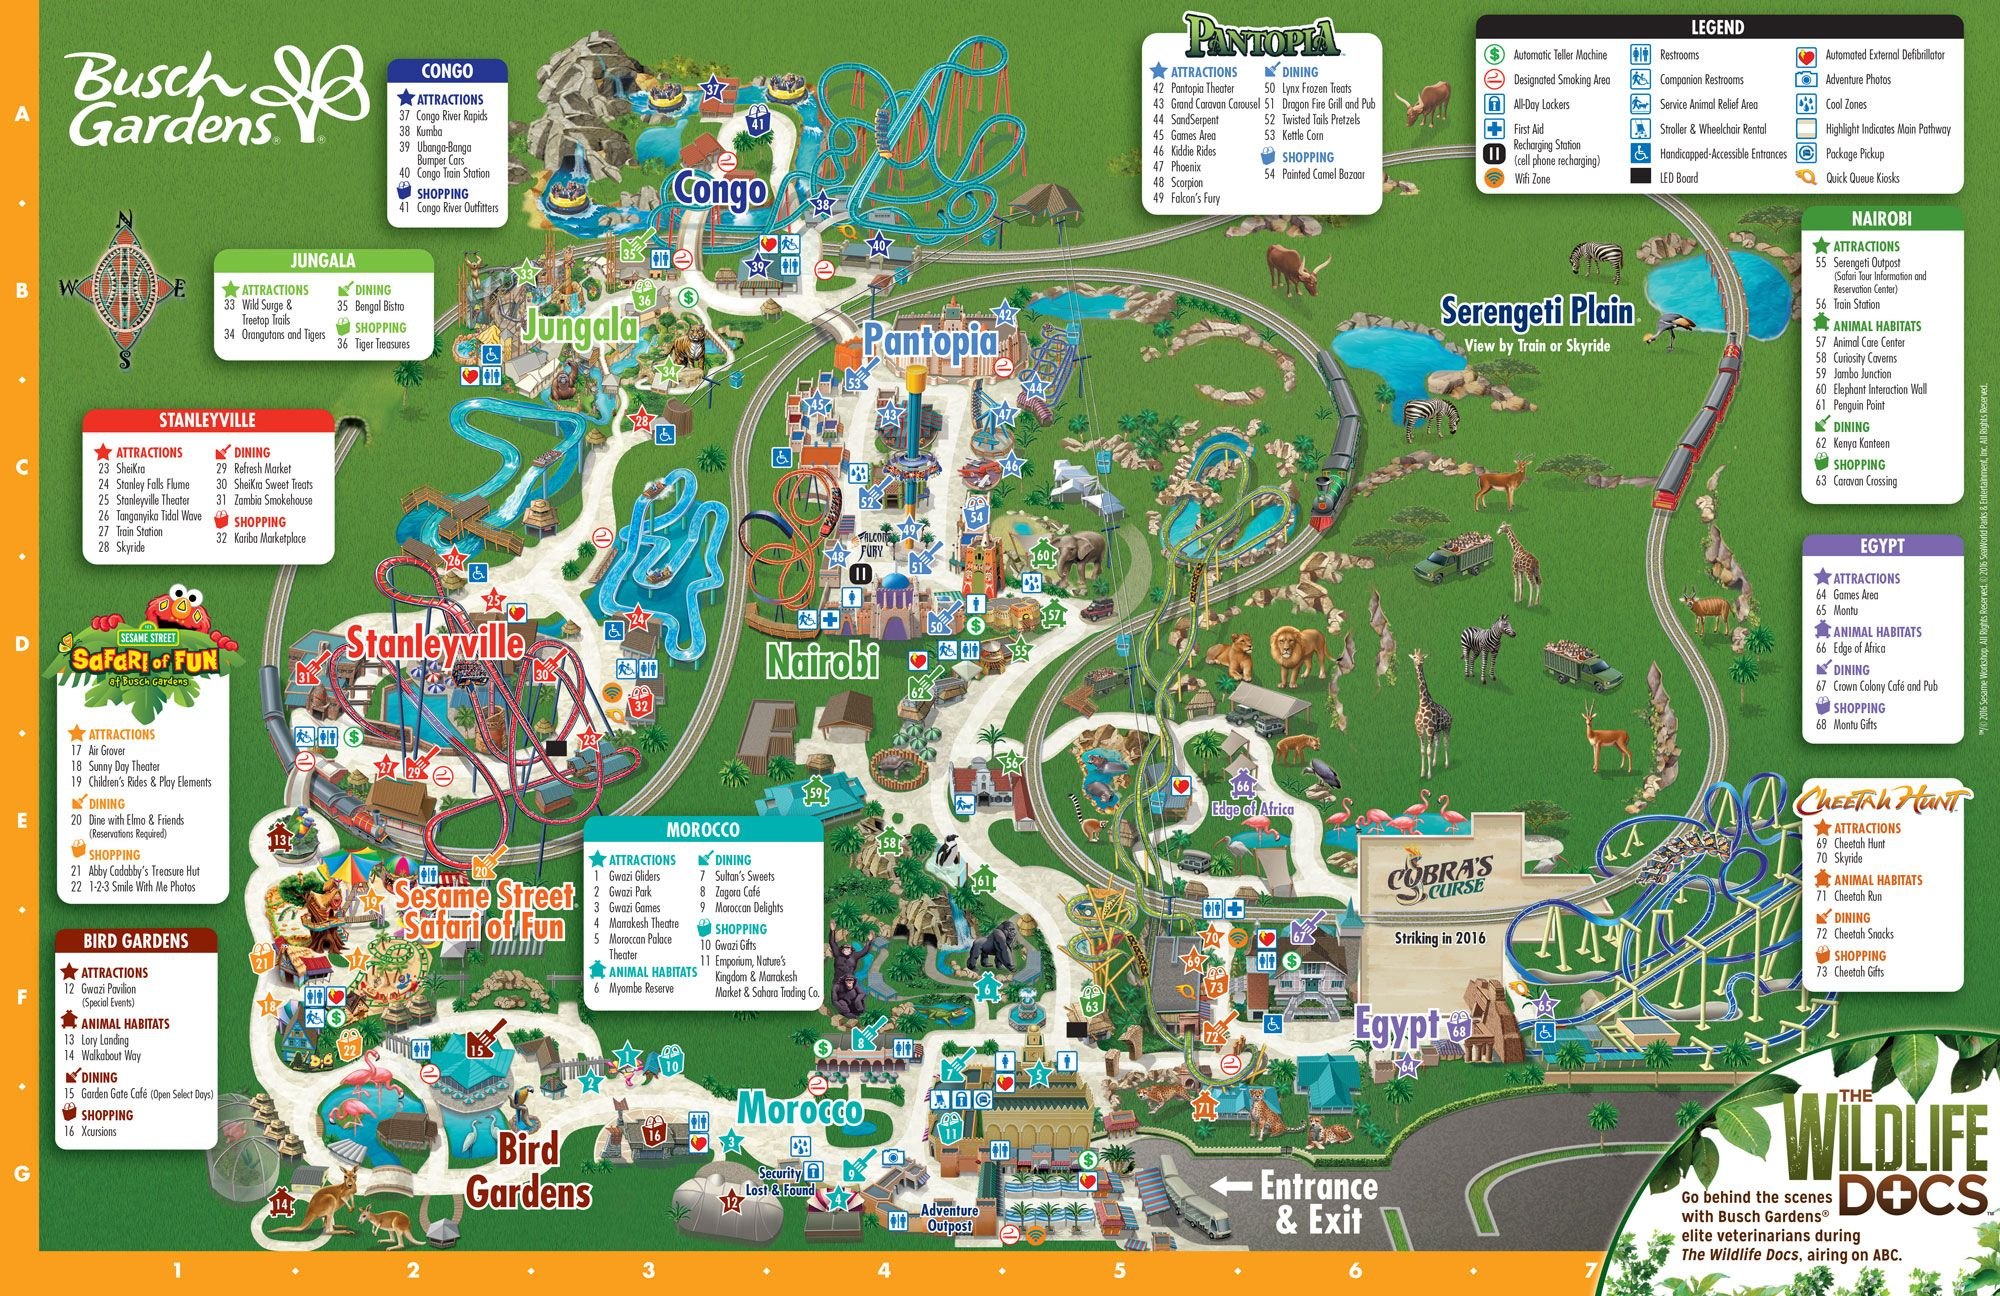 Park Map Busch Gardens Tampa Bay Tampa Bay Maps Pinterest Busch Gardens Tampa Bay Park